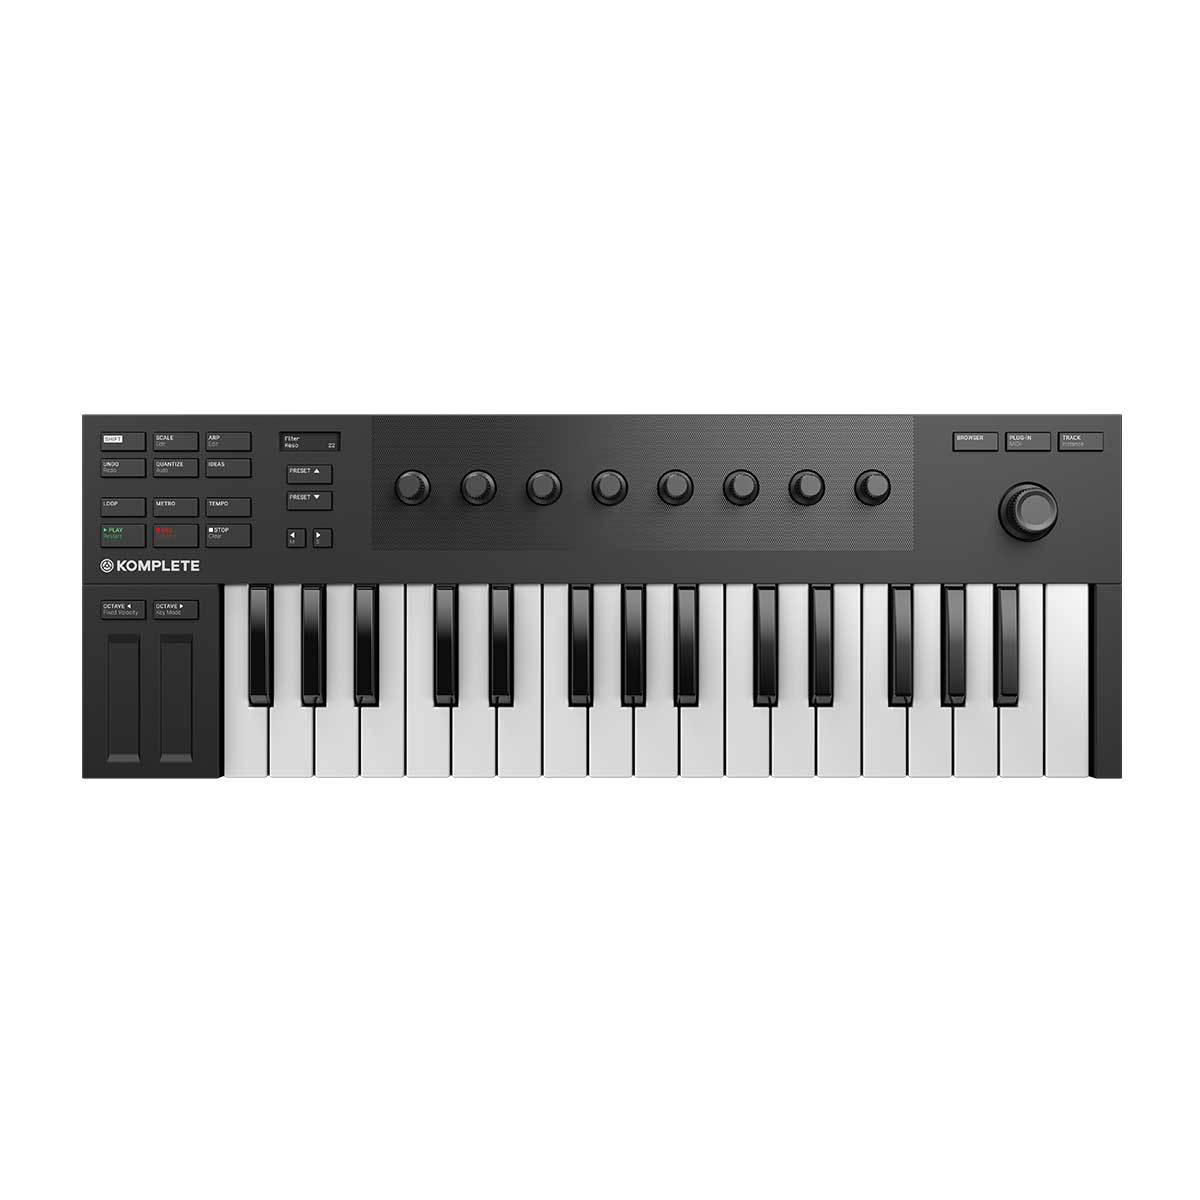 Controller Keyboards - Native Instruments Komplete M32 Controller Keyboard